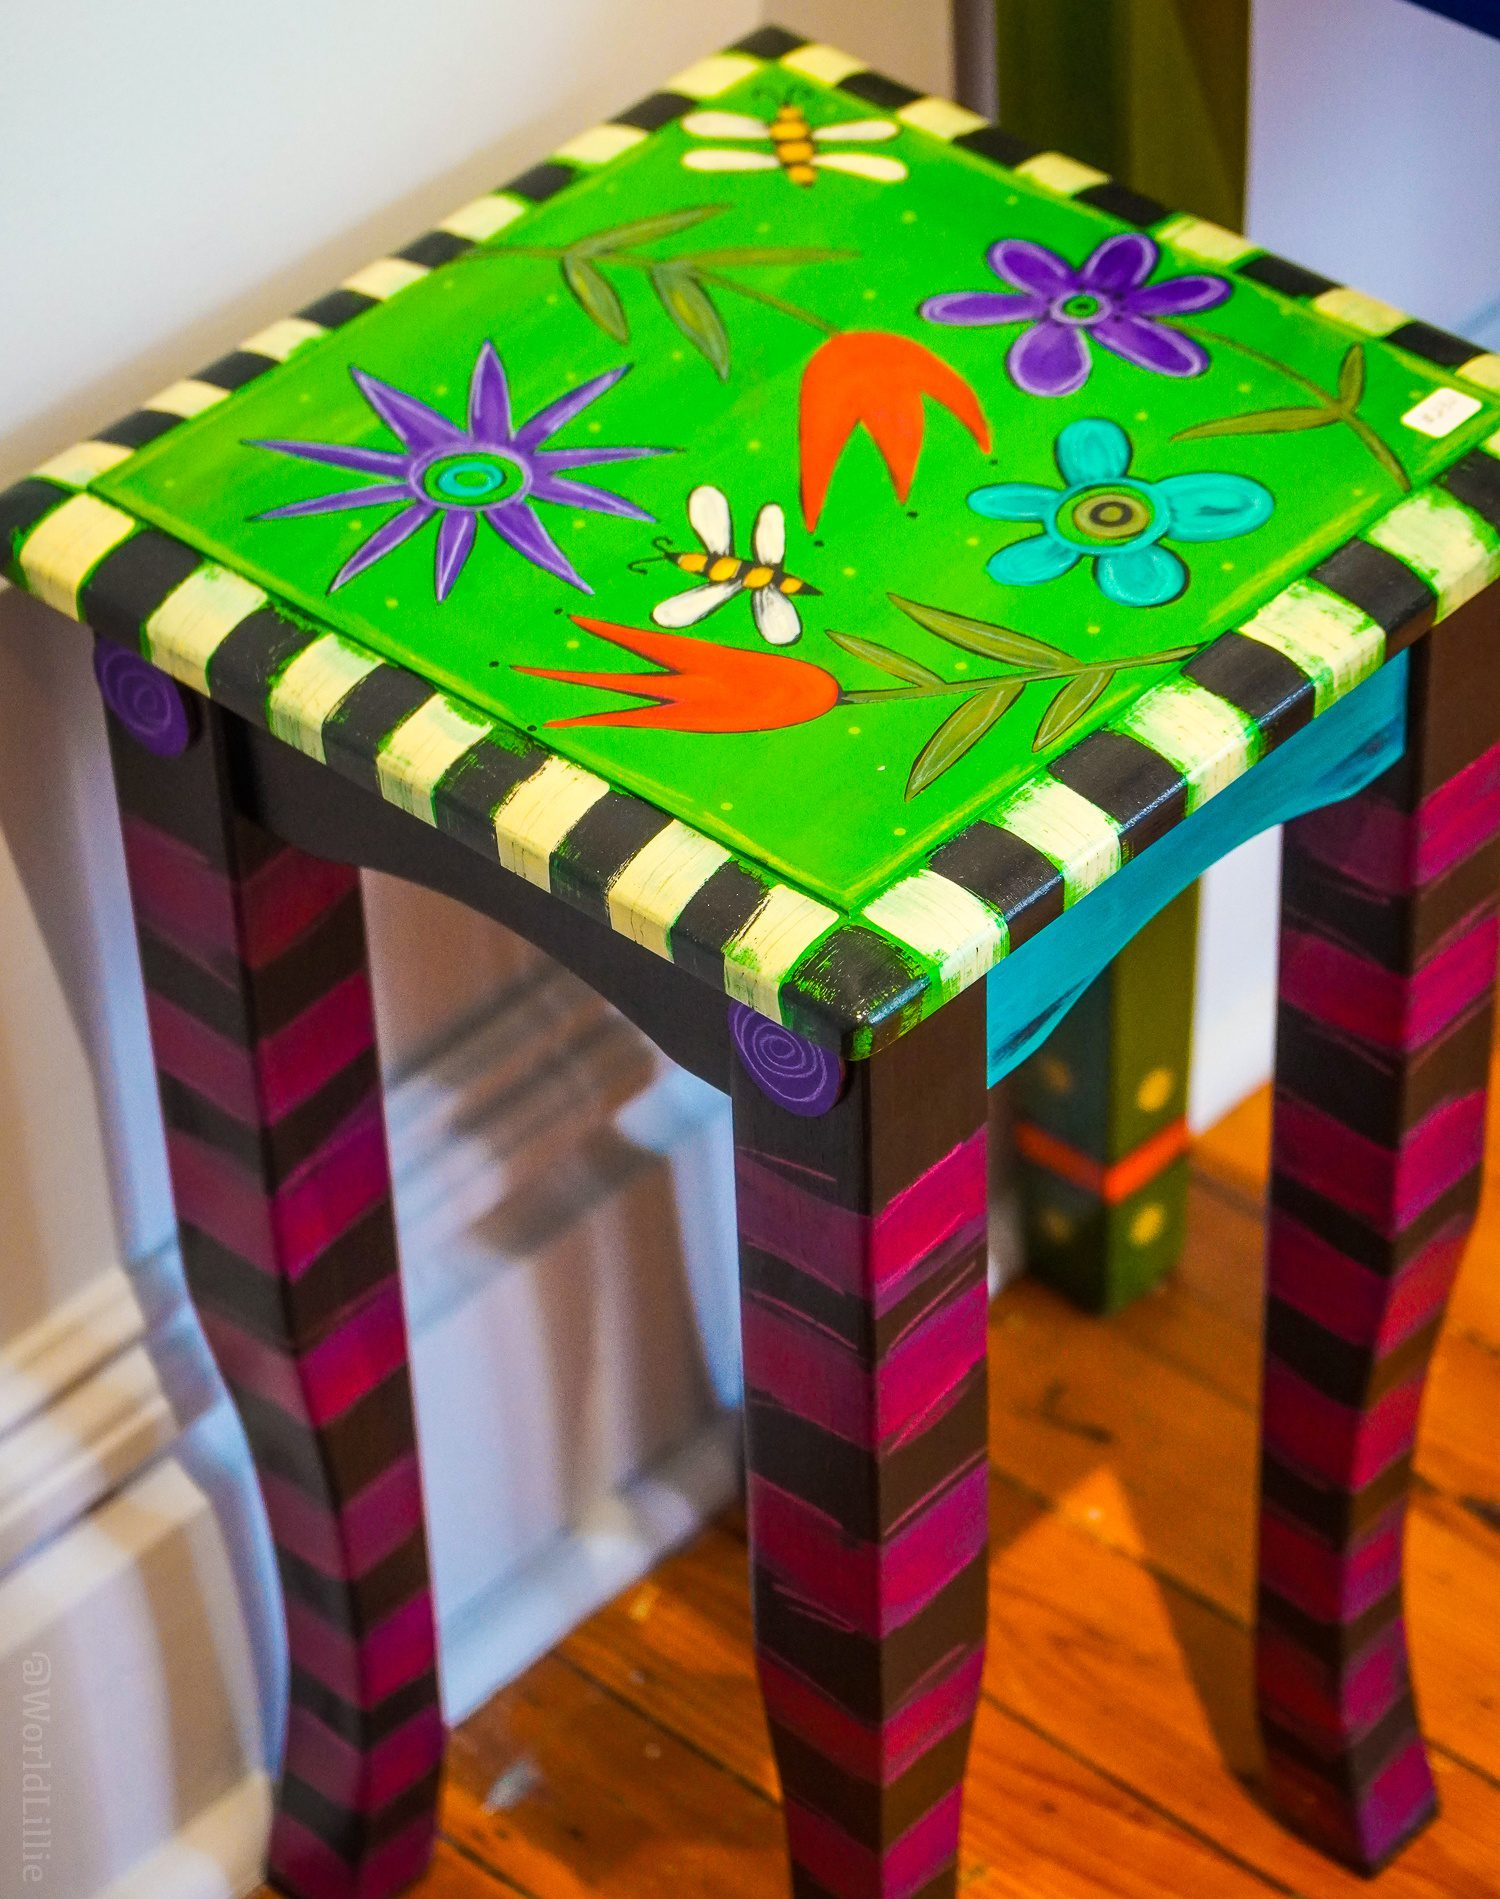 A jolly hand-painted side table.